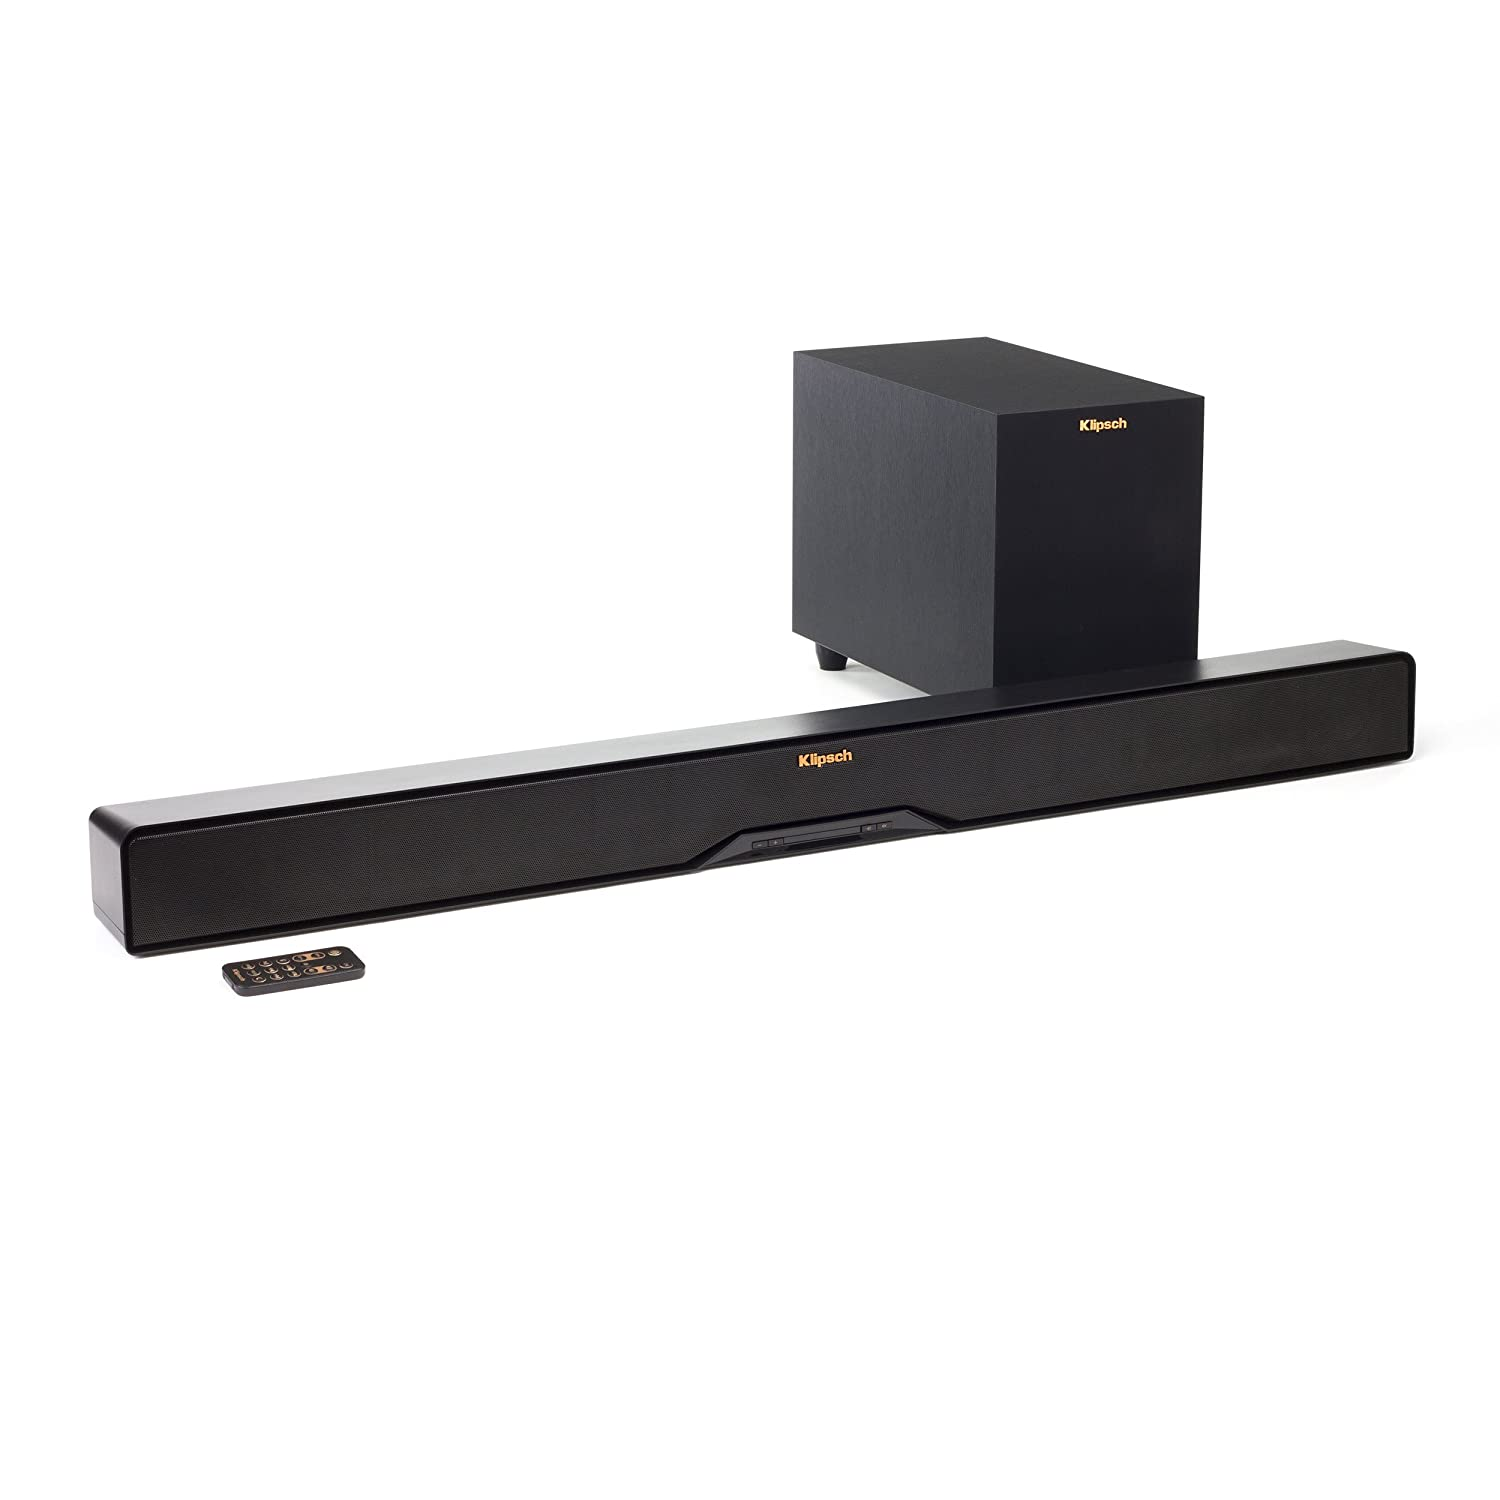 Soundbar Speaker,Amazon.com